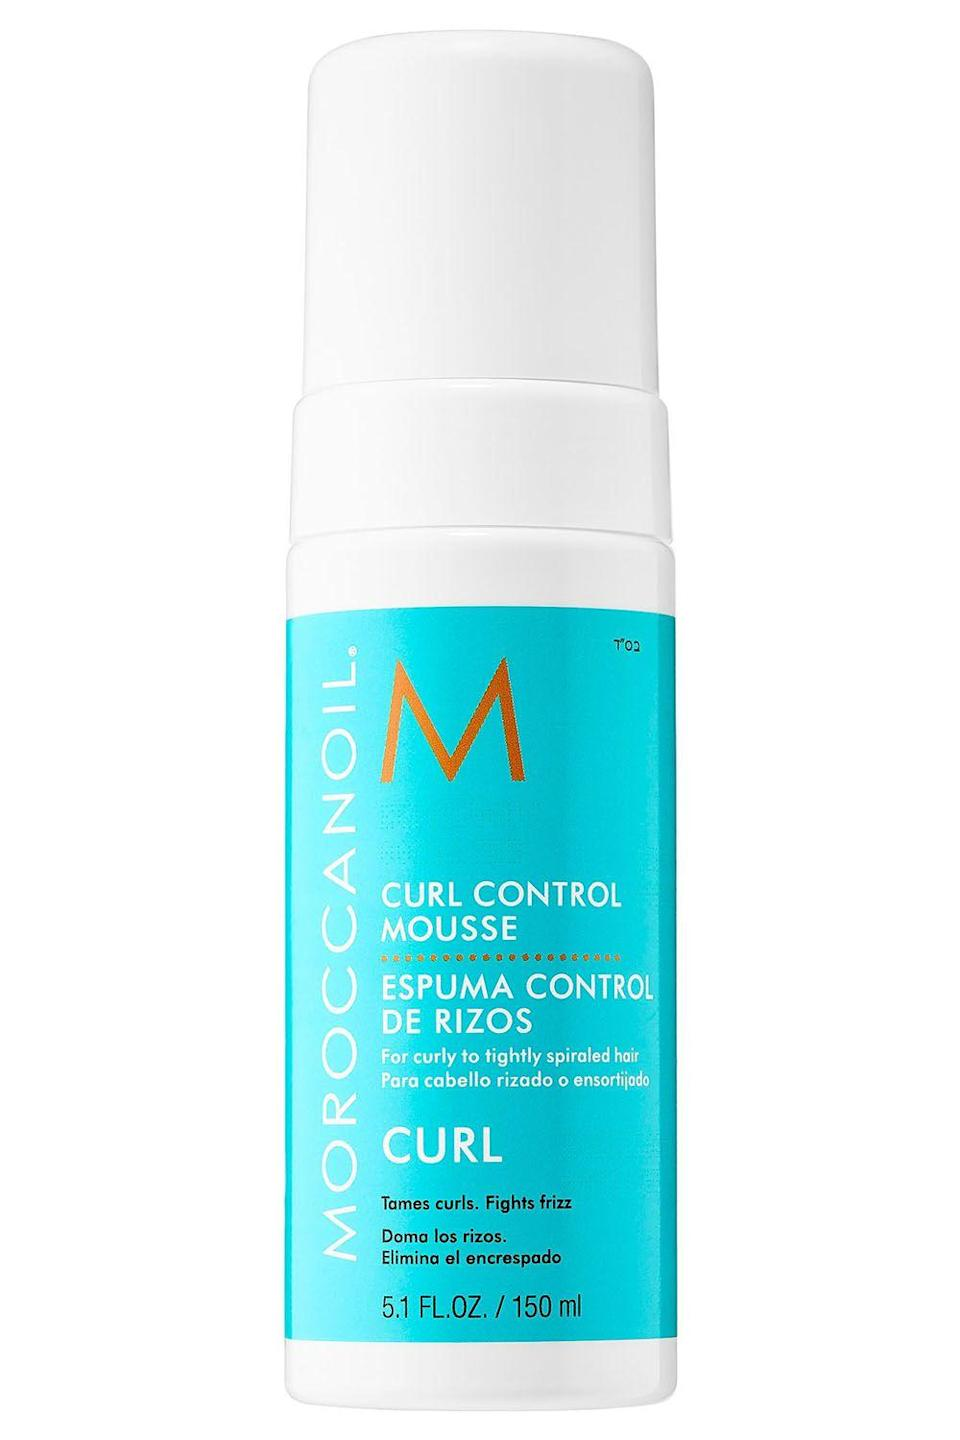 """<p><strong>Moroccanoil</strong></p><p>sephora.com</p><p><strong>$23.00</strong></p><p><a href=""""https://www.sephora.com/product/curl-control-mousse-P427314"""" rel=""""nofollow noopener"""" target=""""_blank"""" data-ylk=""""slk:Shop Now"""" class=""""link rapid-noclick-resp"""">Shop Now</a></p><p>Argan oil is the hero ingredient in this moisturizing mousse. Comb two pumps of the formula to towel-dried hair-not only will it <strong>bring shine and hydration back to your fuzzy <a href=""""https://www.cosmopolitan.com/style-beauty/beauty/a26090163/best-products-4c-curls-hair/"""" rel=""""nofollow noopener"""" target=""""_blank"""" data-ylk=""""slk:curls"""" class=""""link rapid-noclick-resp"""">curls</a> </strong>(thanks, argan oil), but it'll also keep them soft and defined all day long. </p>"""